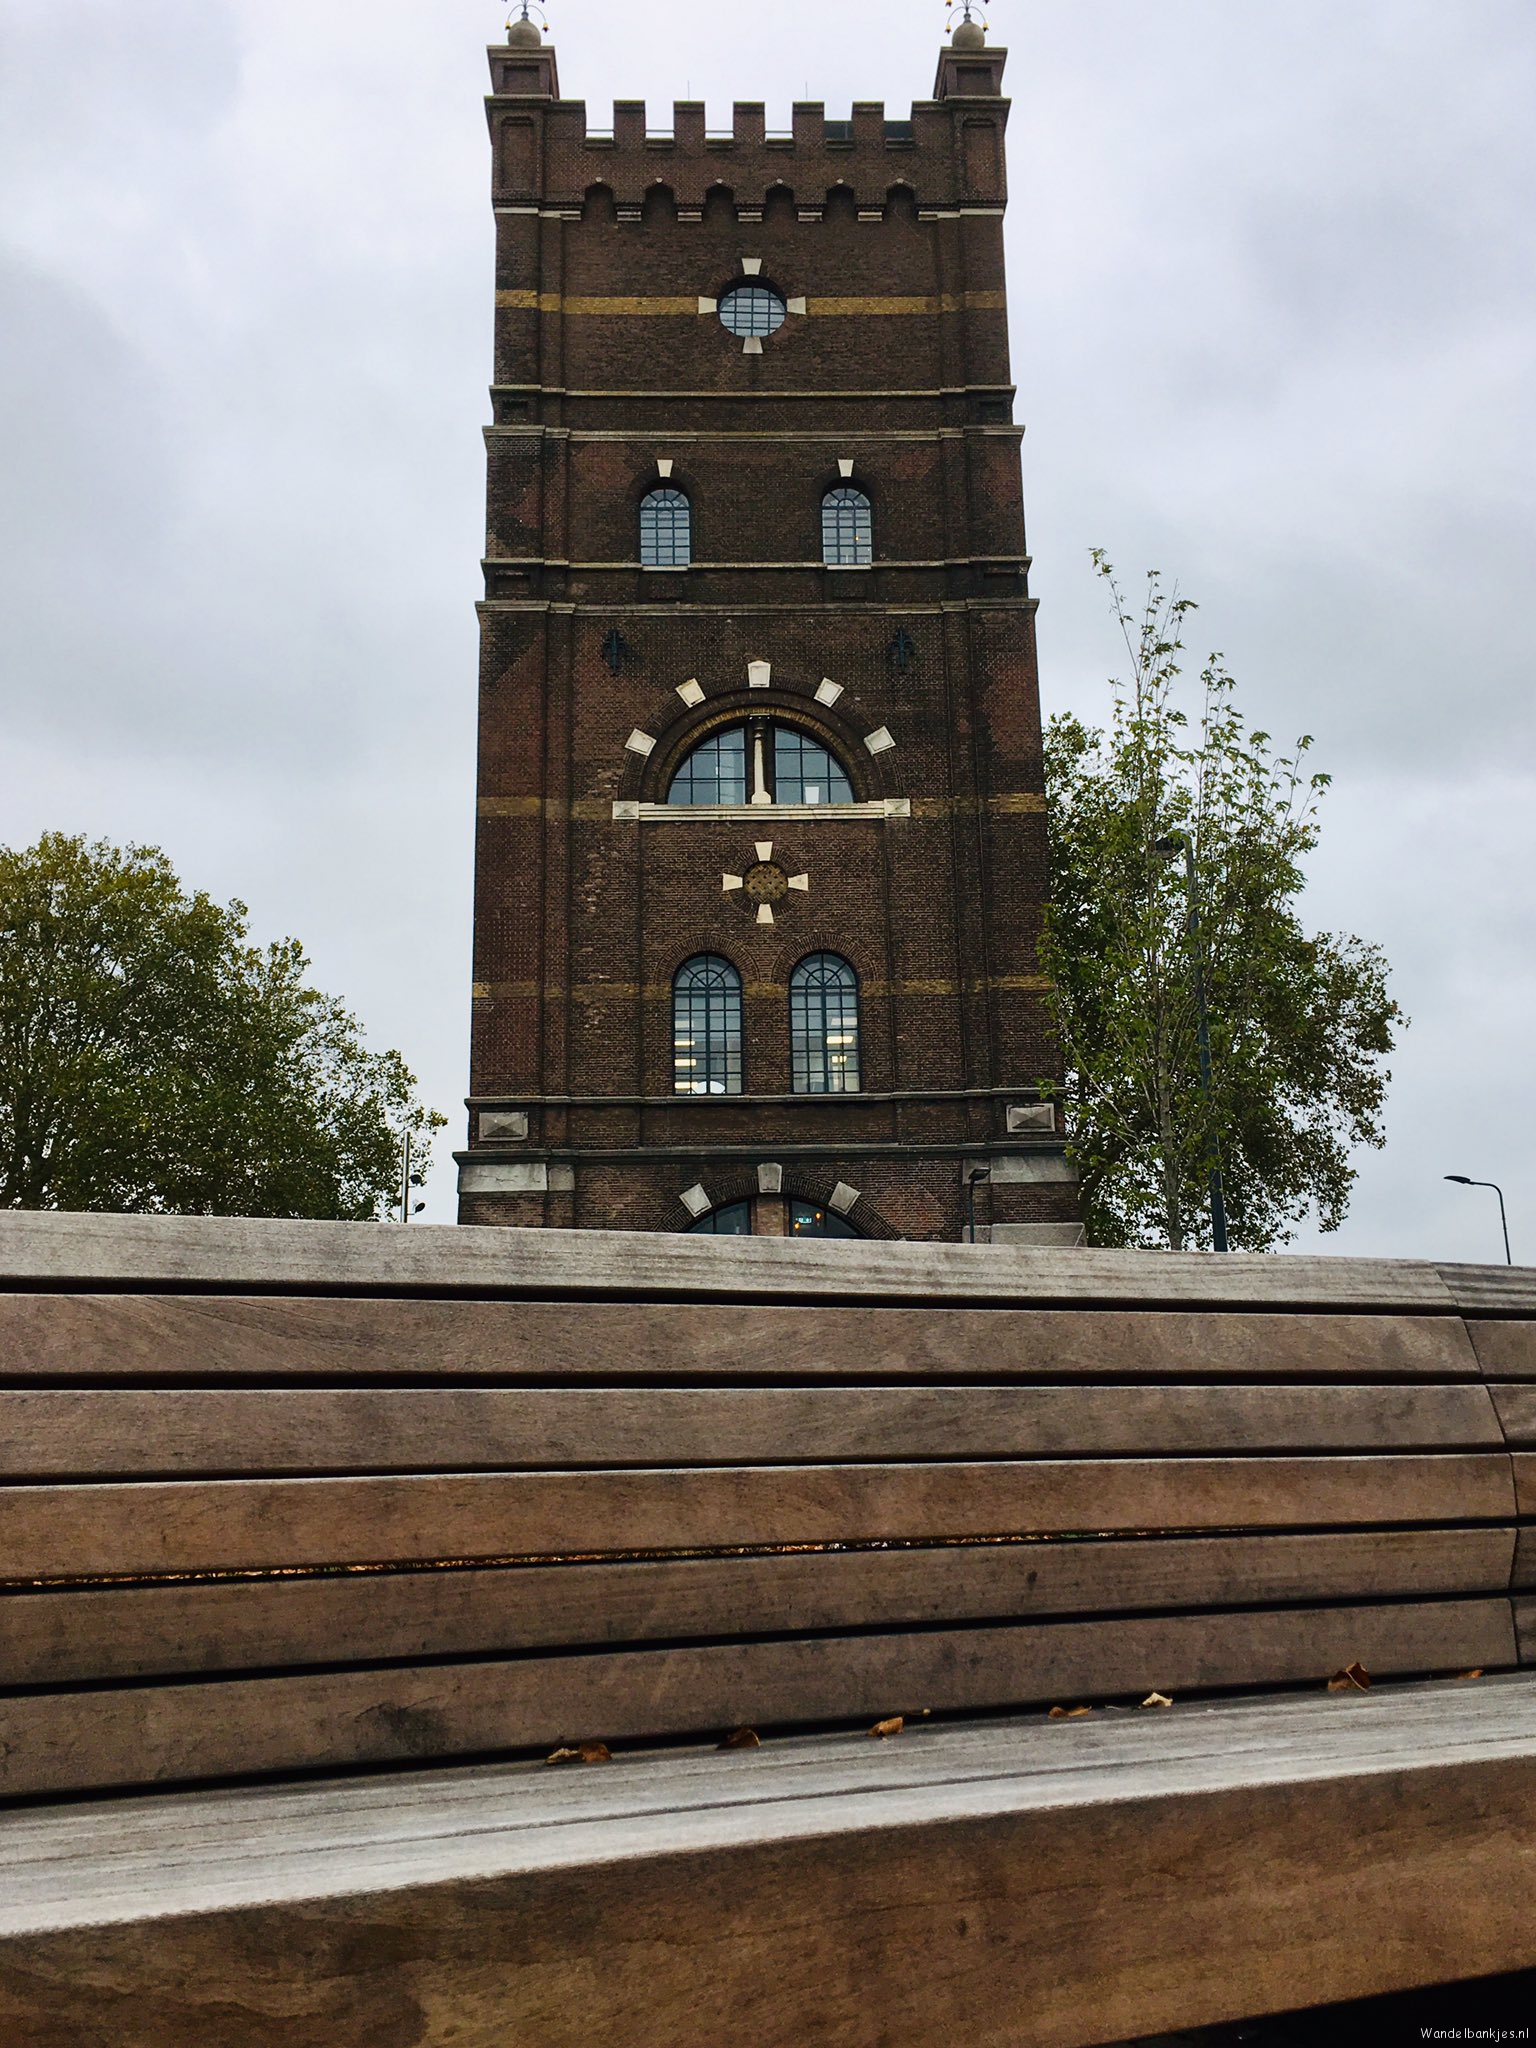 rt-dianavanlit-wandelbankjes-watertoren-kop-van-hintham-https-t-co-zj5x4nyzvh